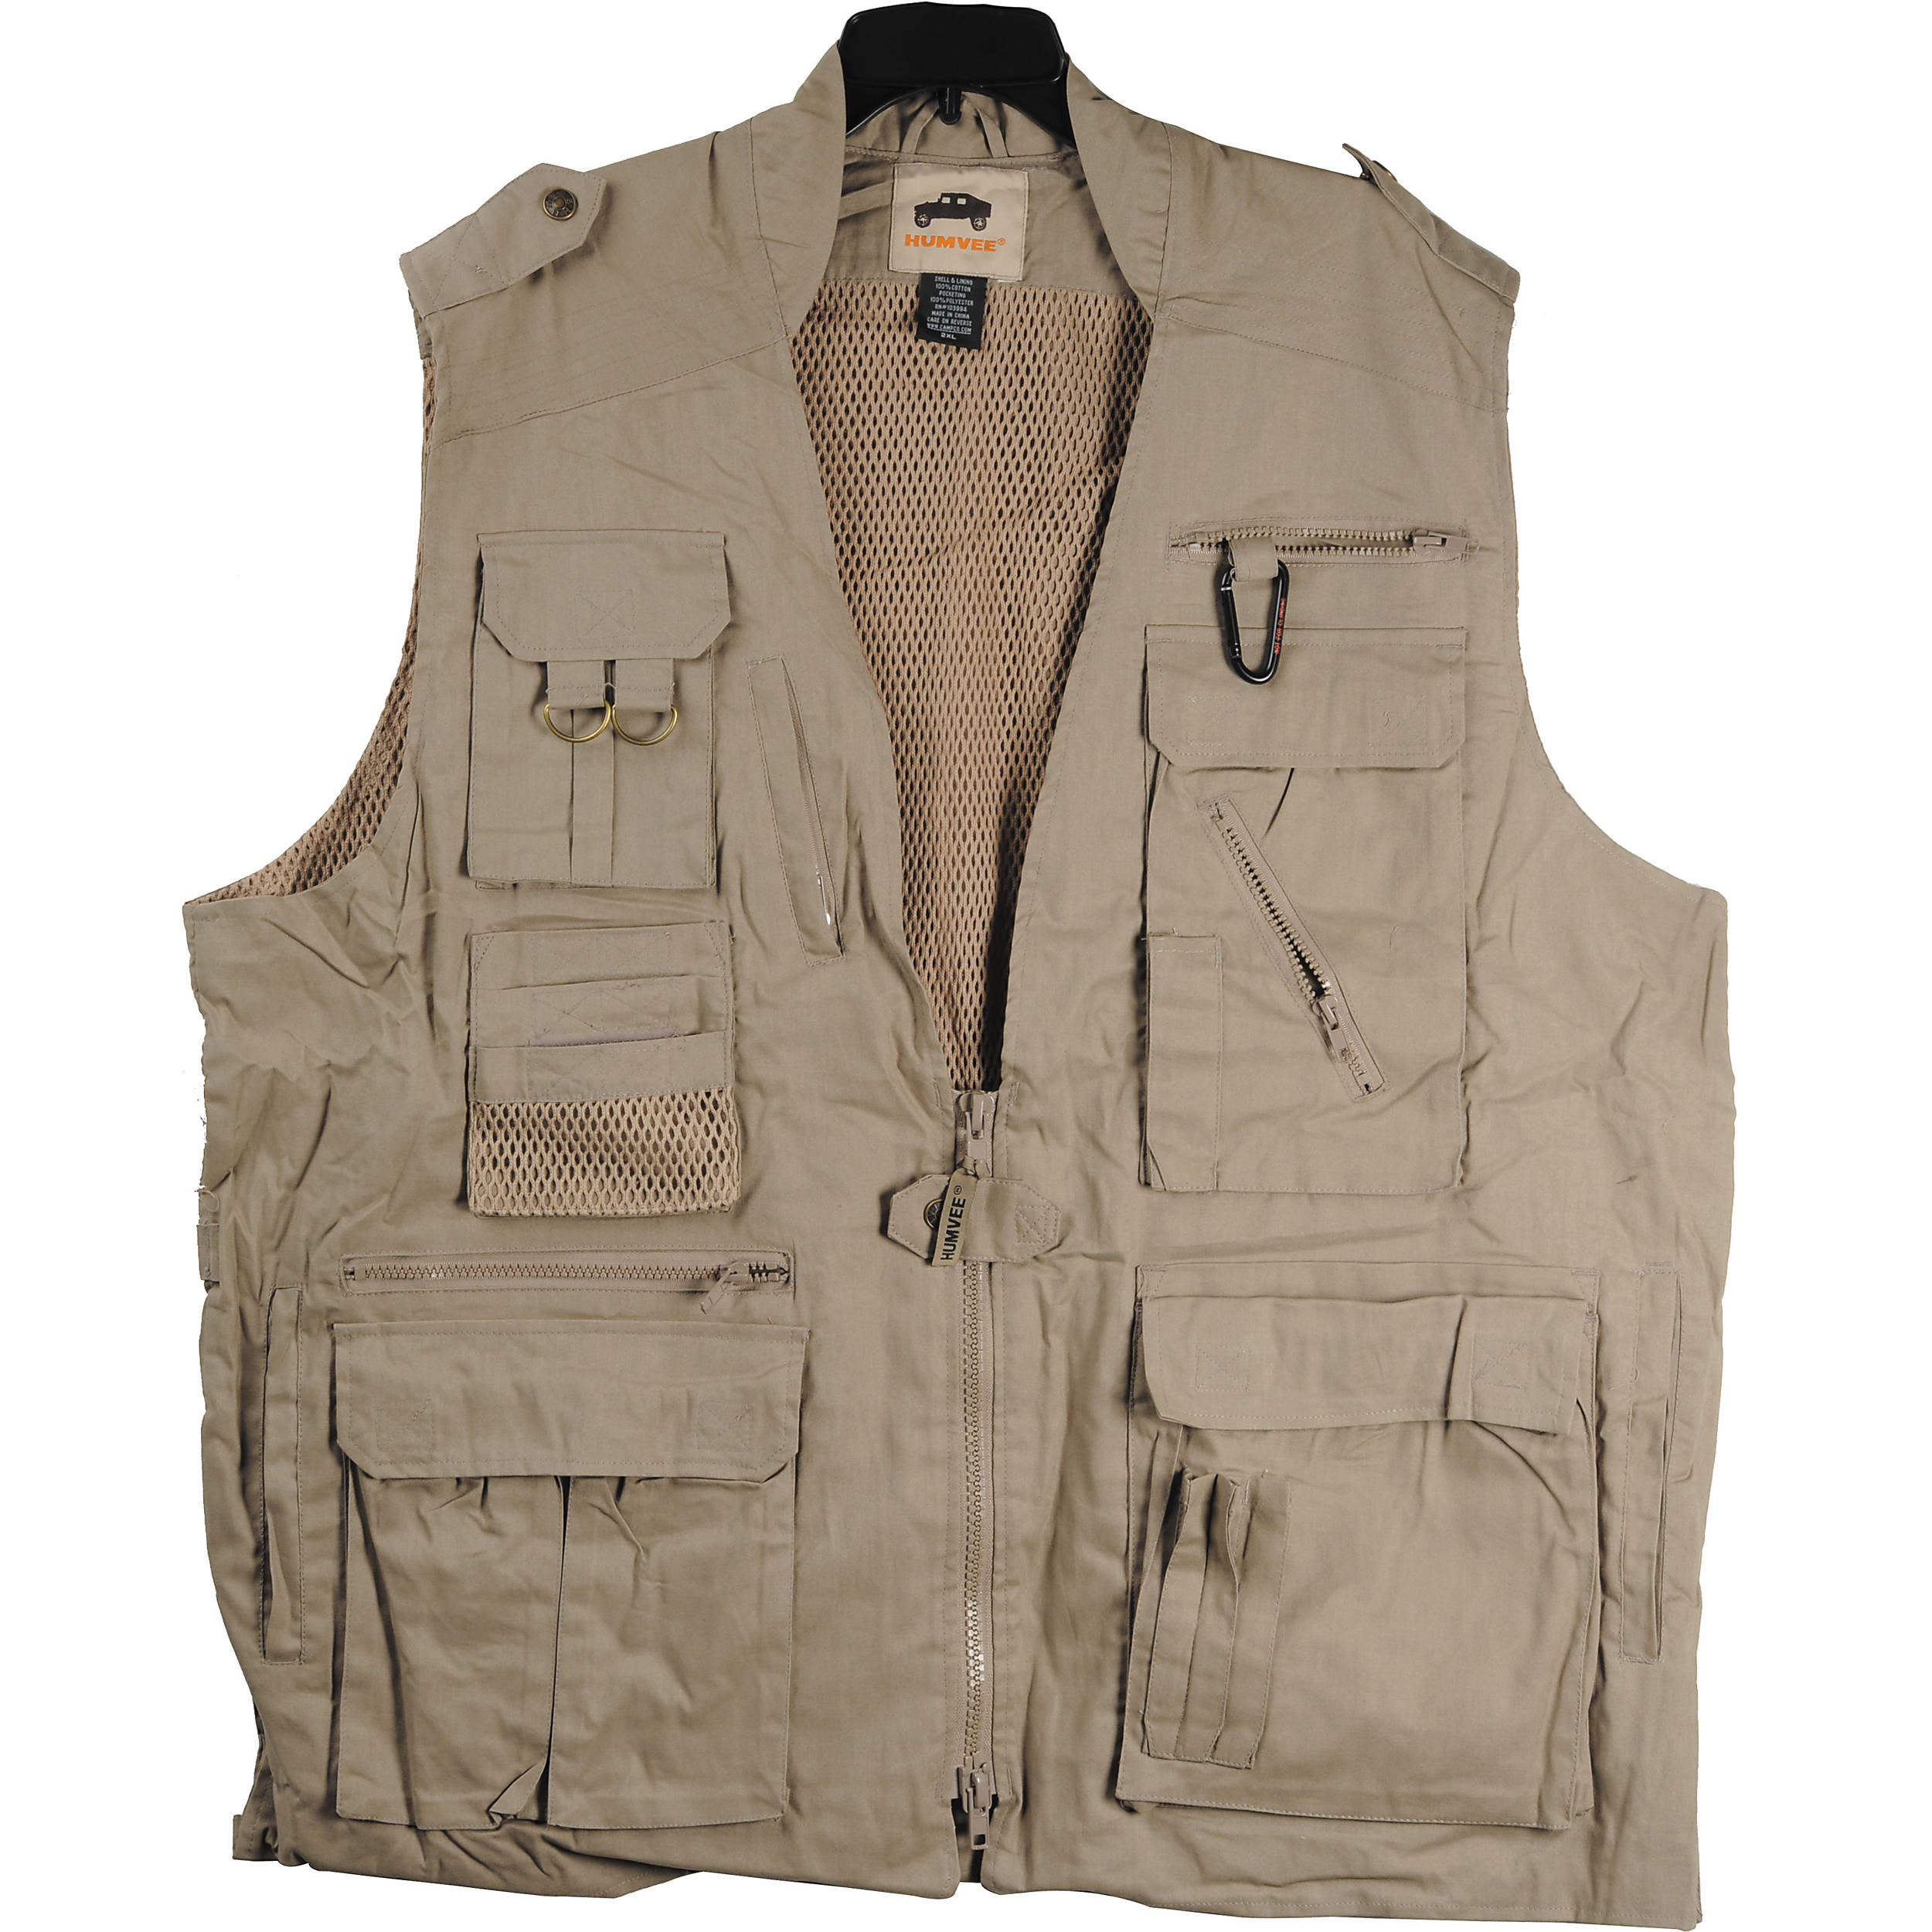 Humvee By Campco Safari Photo Vest Large Khaki Hmv Vs K L Bh